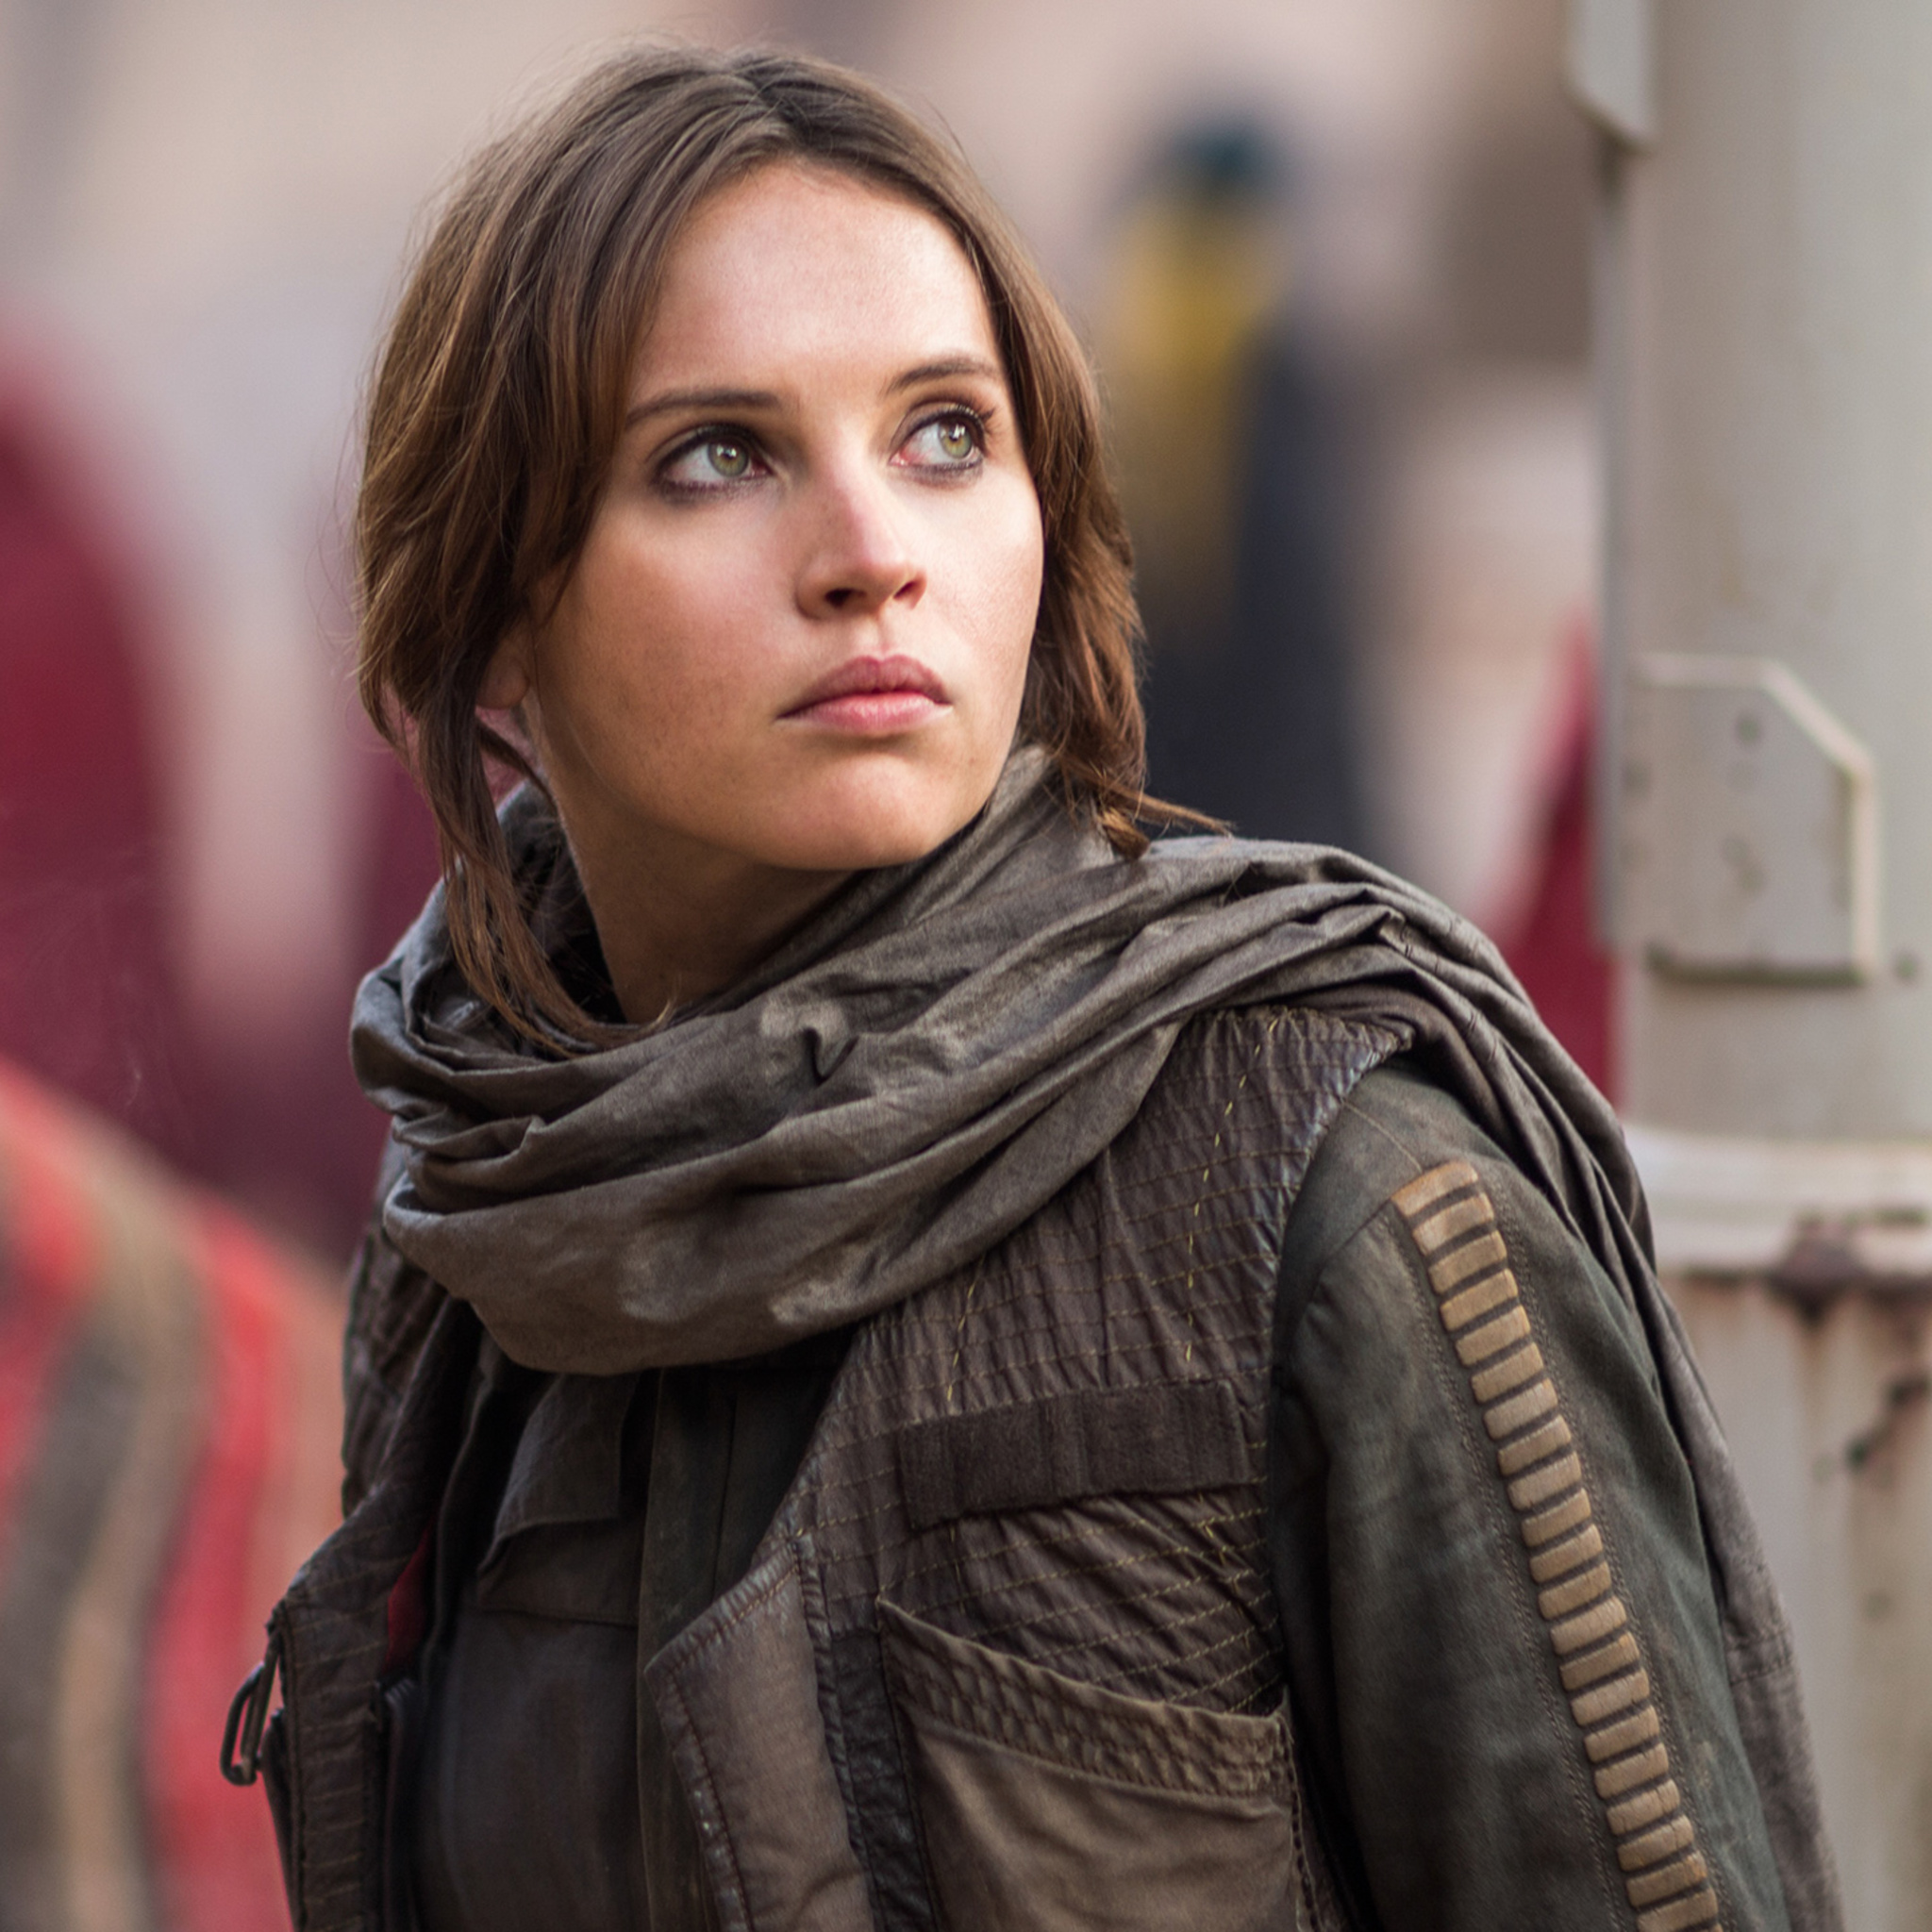 What's on Jyn Erso's top shelf?